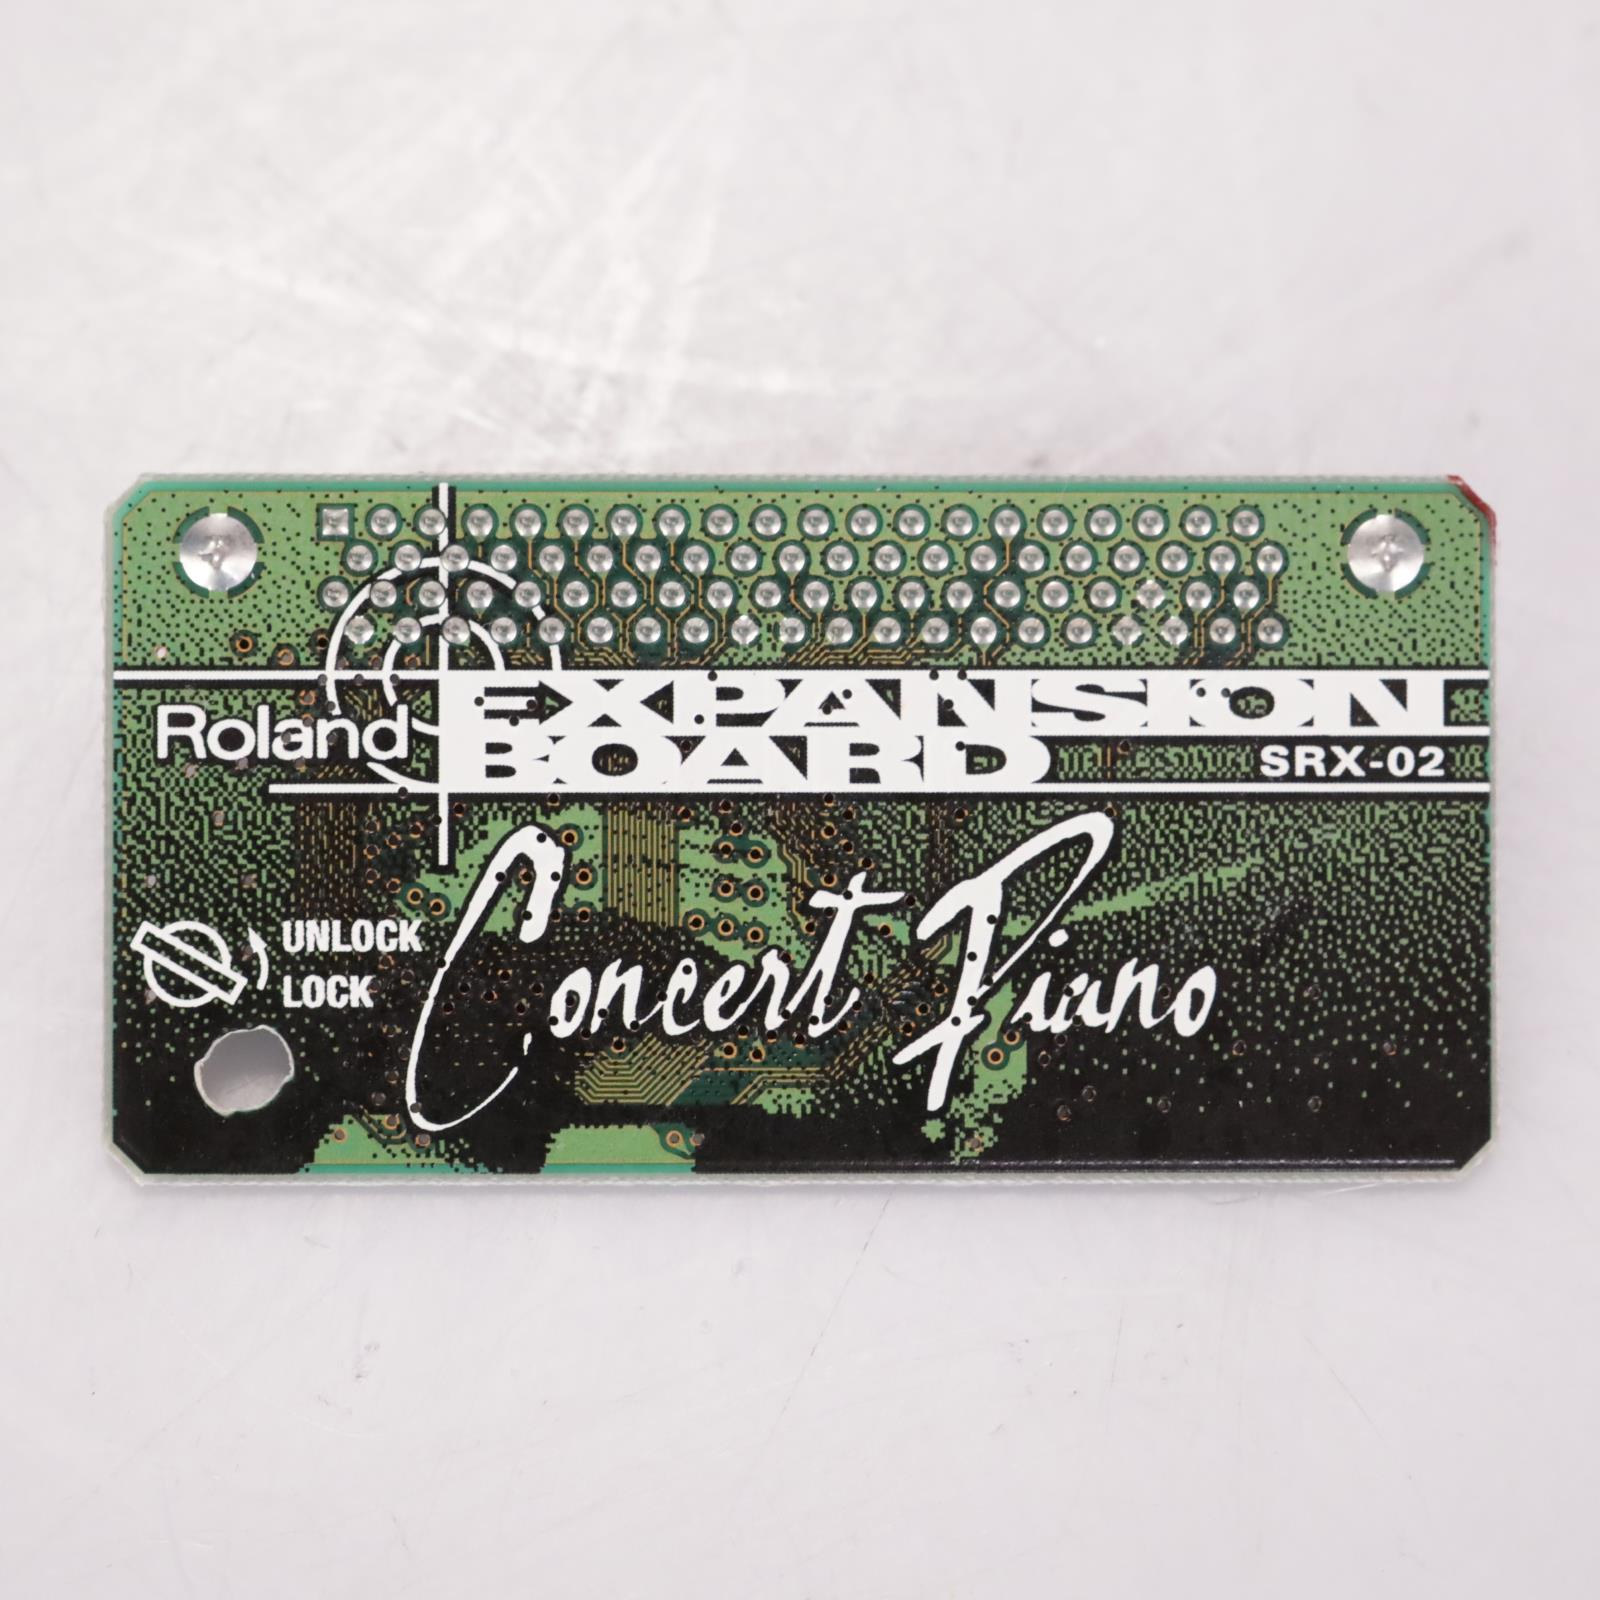 Roland SRX-02 Concert Piano Expansion Board #37303